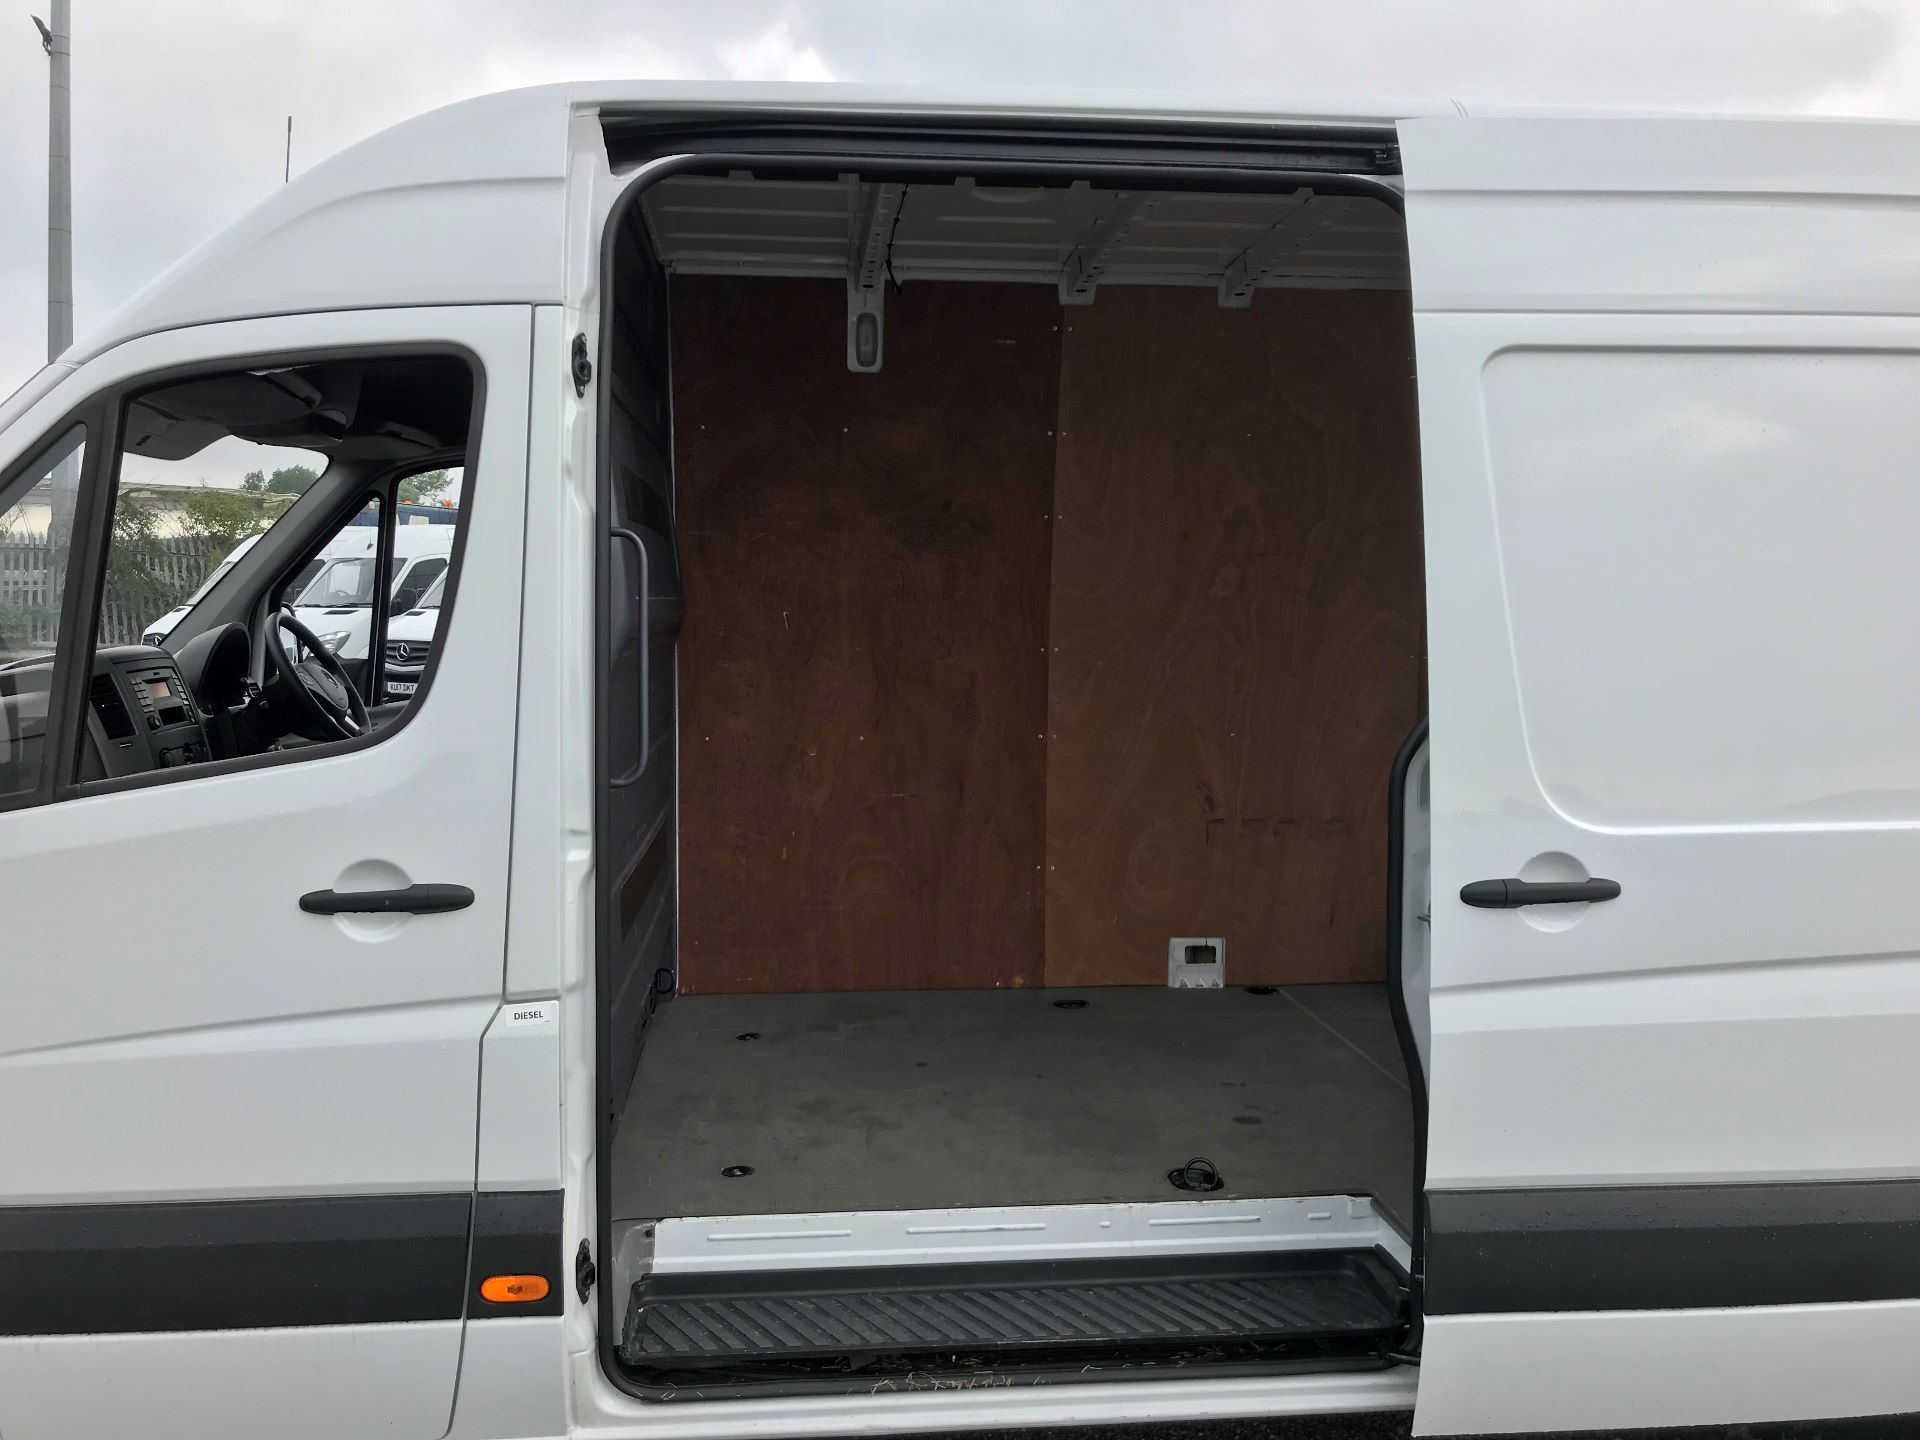 2017 Mercedes-Benz Sprinter 3.5T High Roof Van (KK17BVH) Image 17